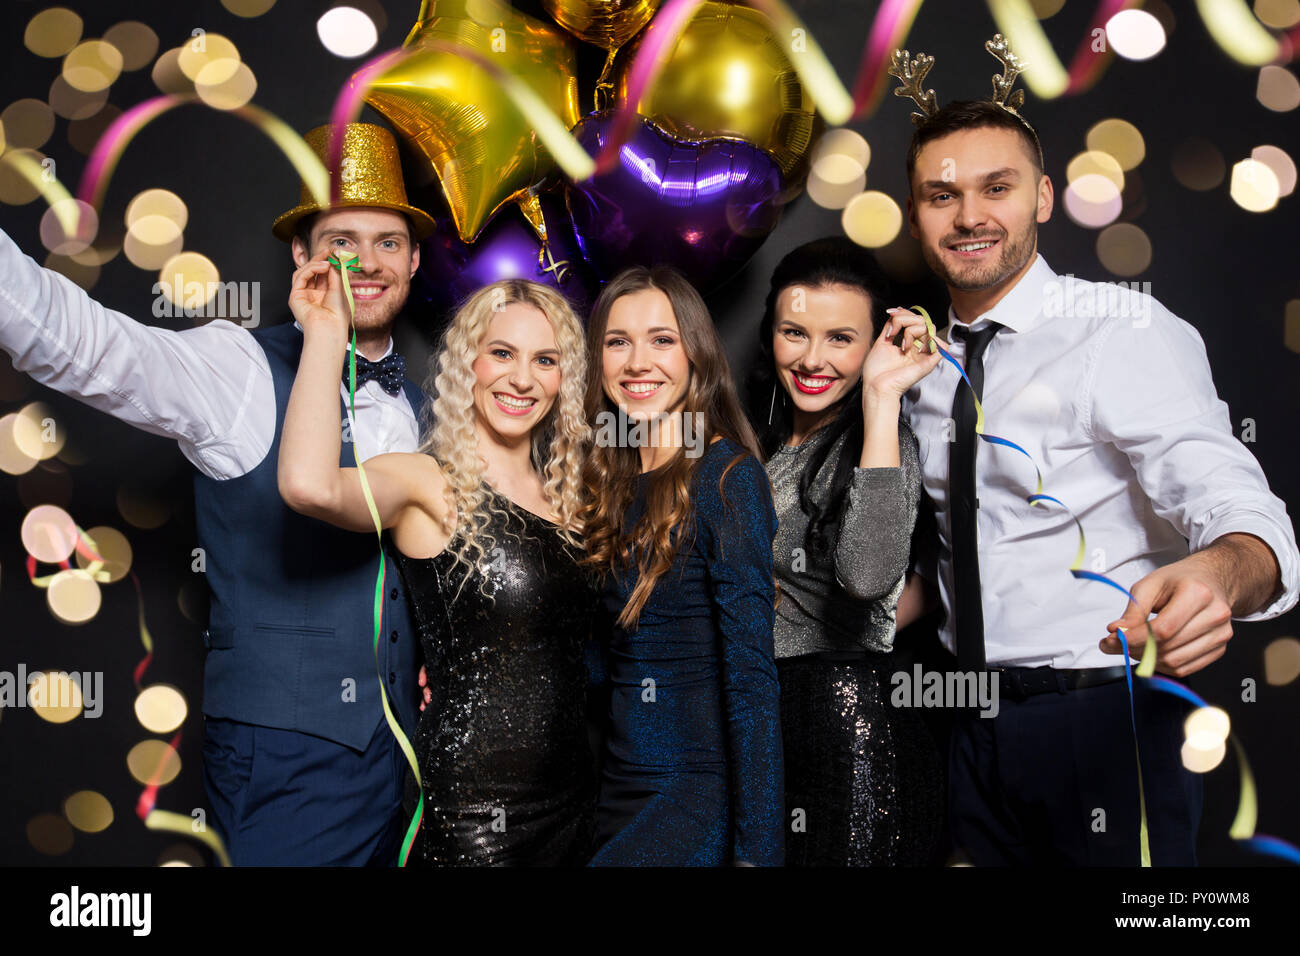 friends at christmas or new year party Stock Photo: 223140296 - Alamy